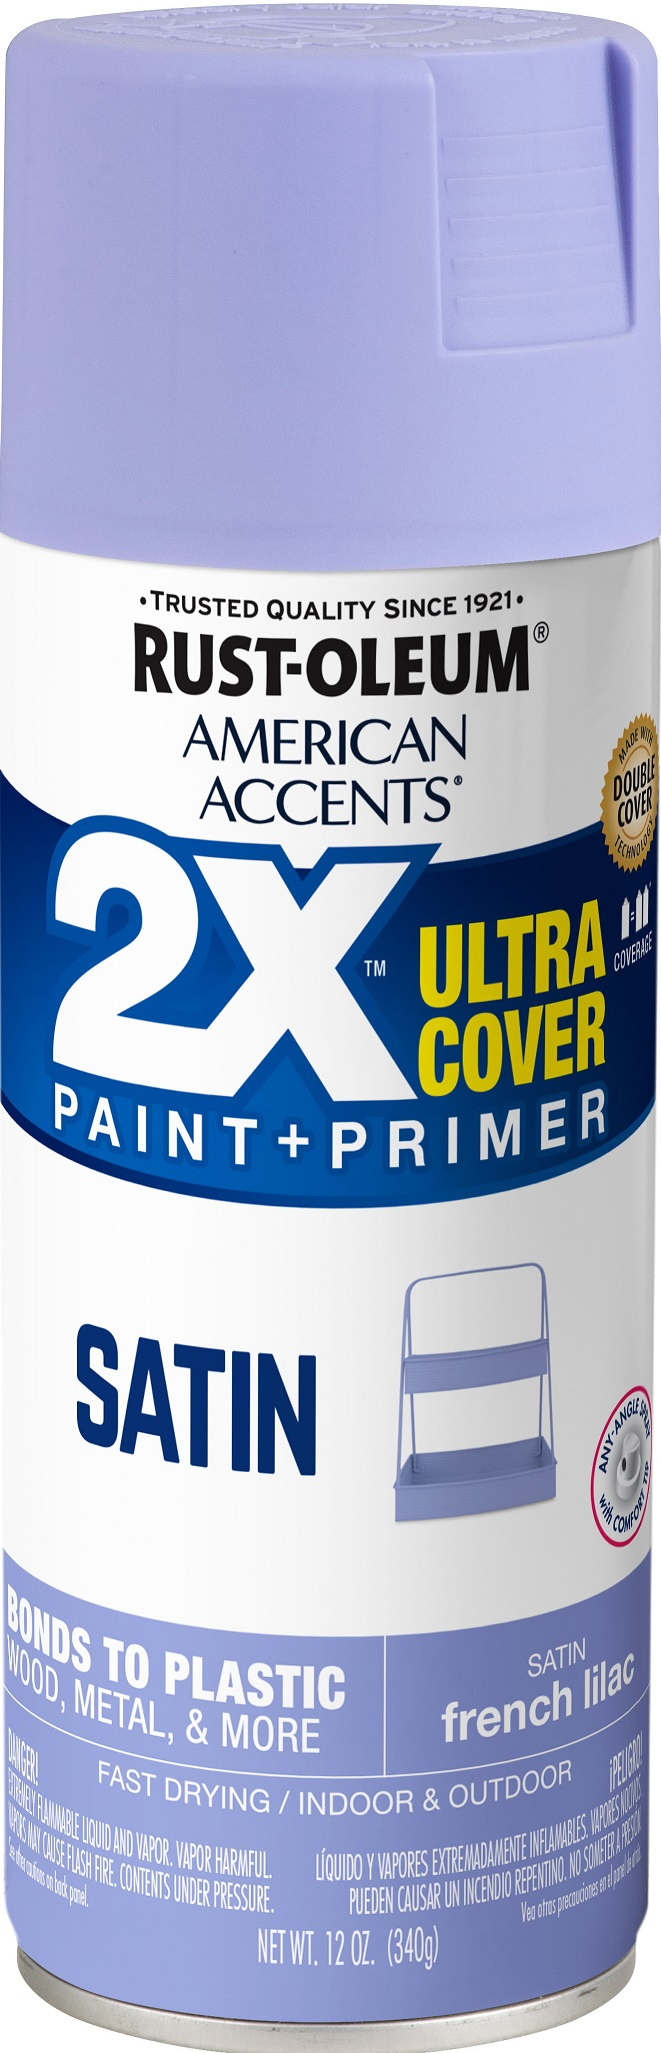 (3 Pack) Rust-Oleum American Accents Ultra Cover 2X Satin French Lilac Spray Paint and Primer in 1, 12 oz